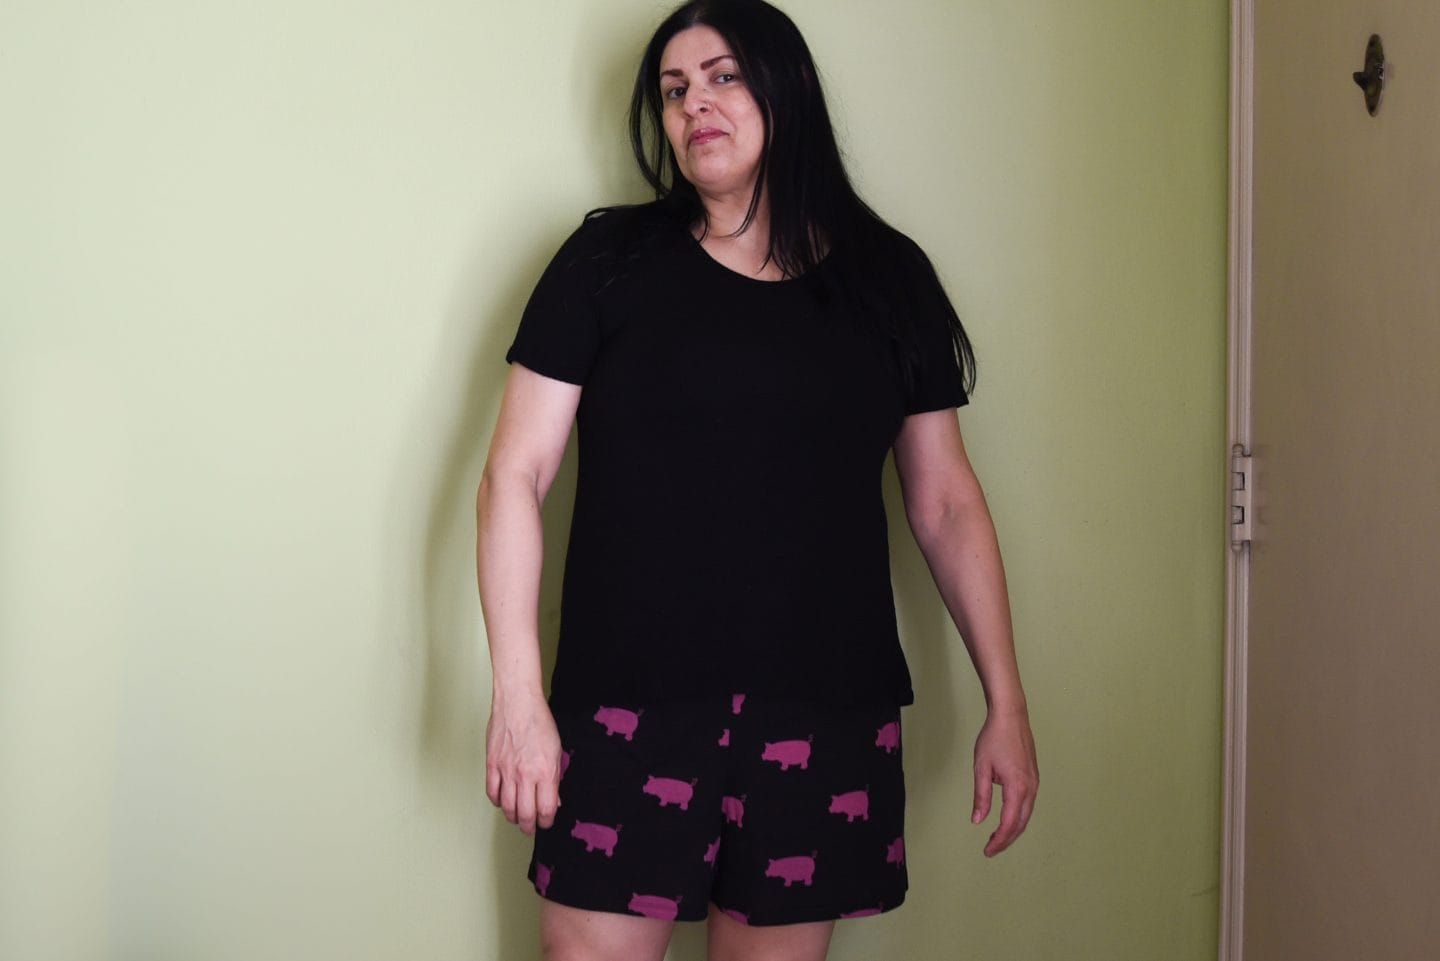 Image of a woman with long black hair standing in front of a green wall wearing a black T-shirt and black shorts with pink pigs